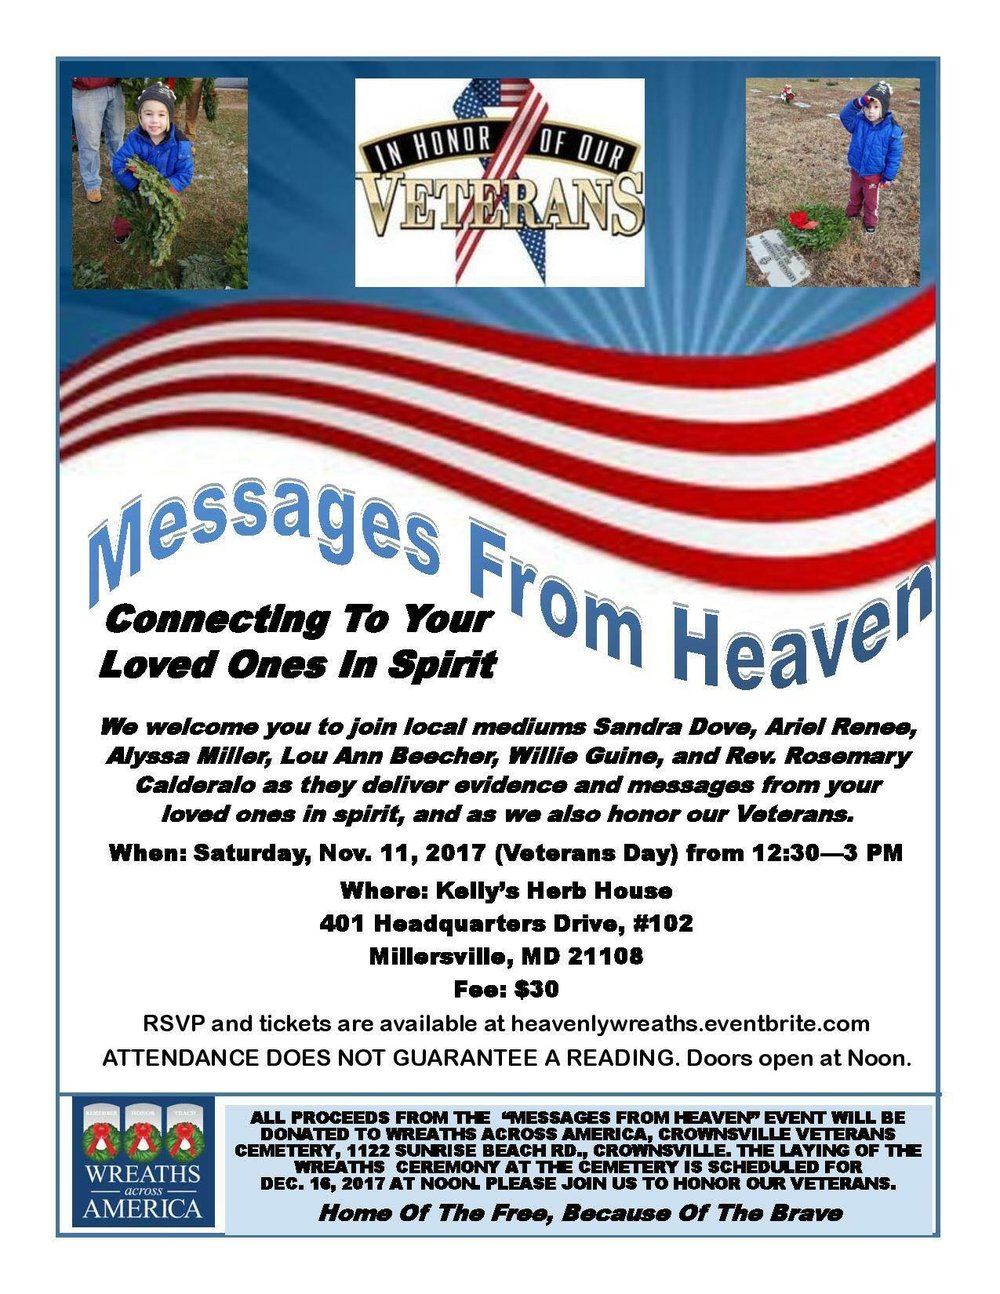 Veteran's Day Wreaths Across America Mediumship Platform Event